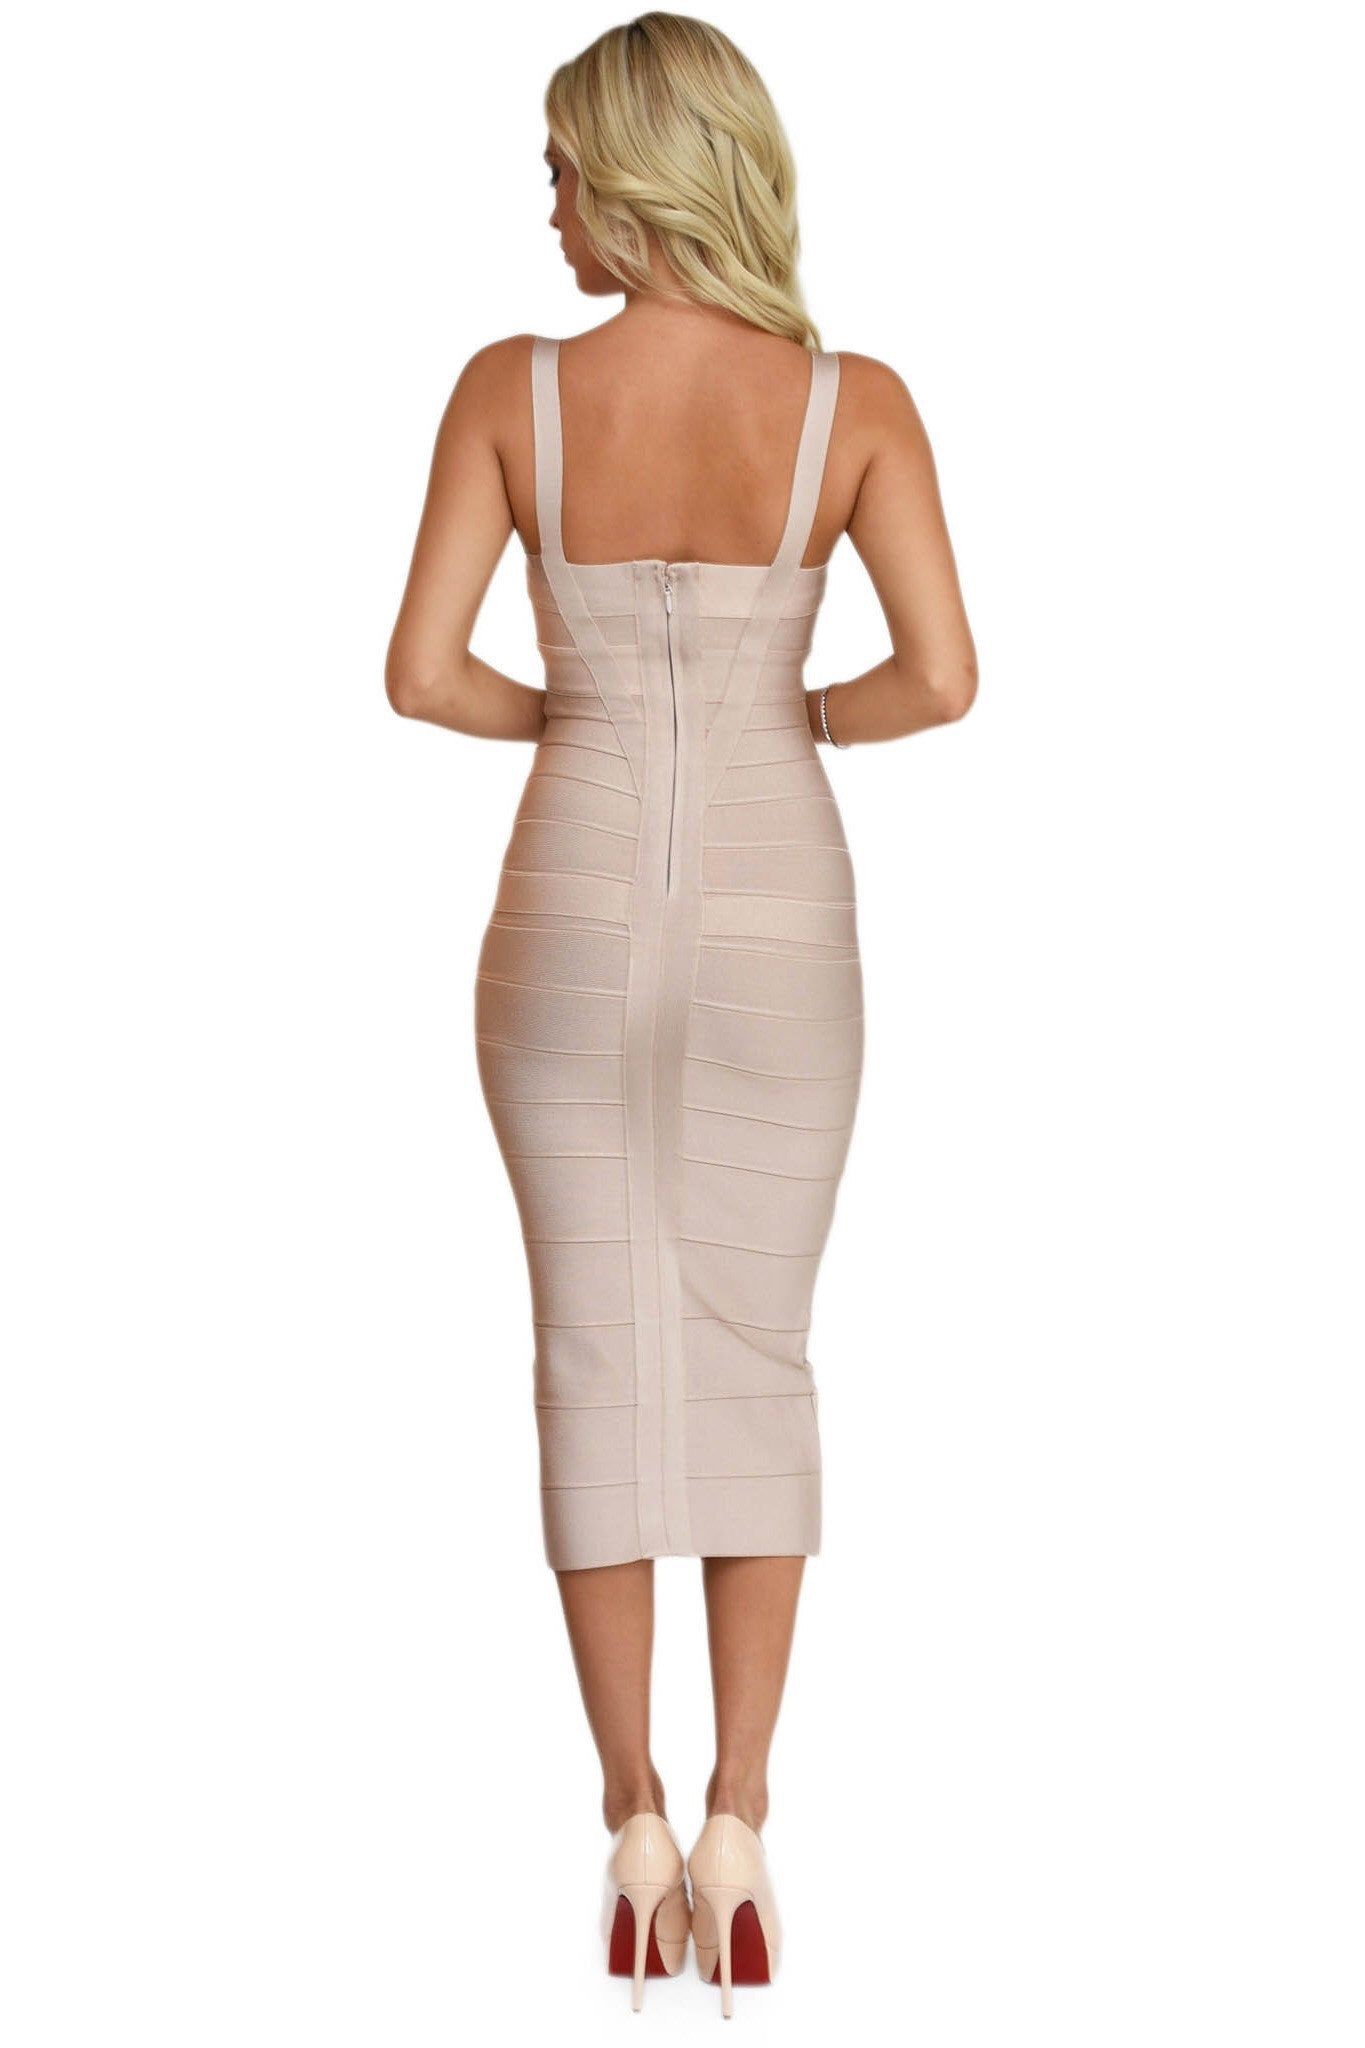 Vogue Nude Bandage Dress